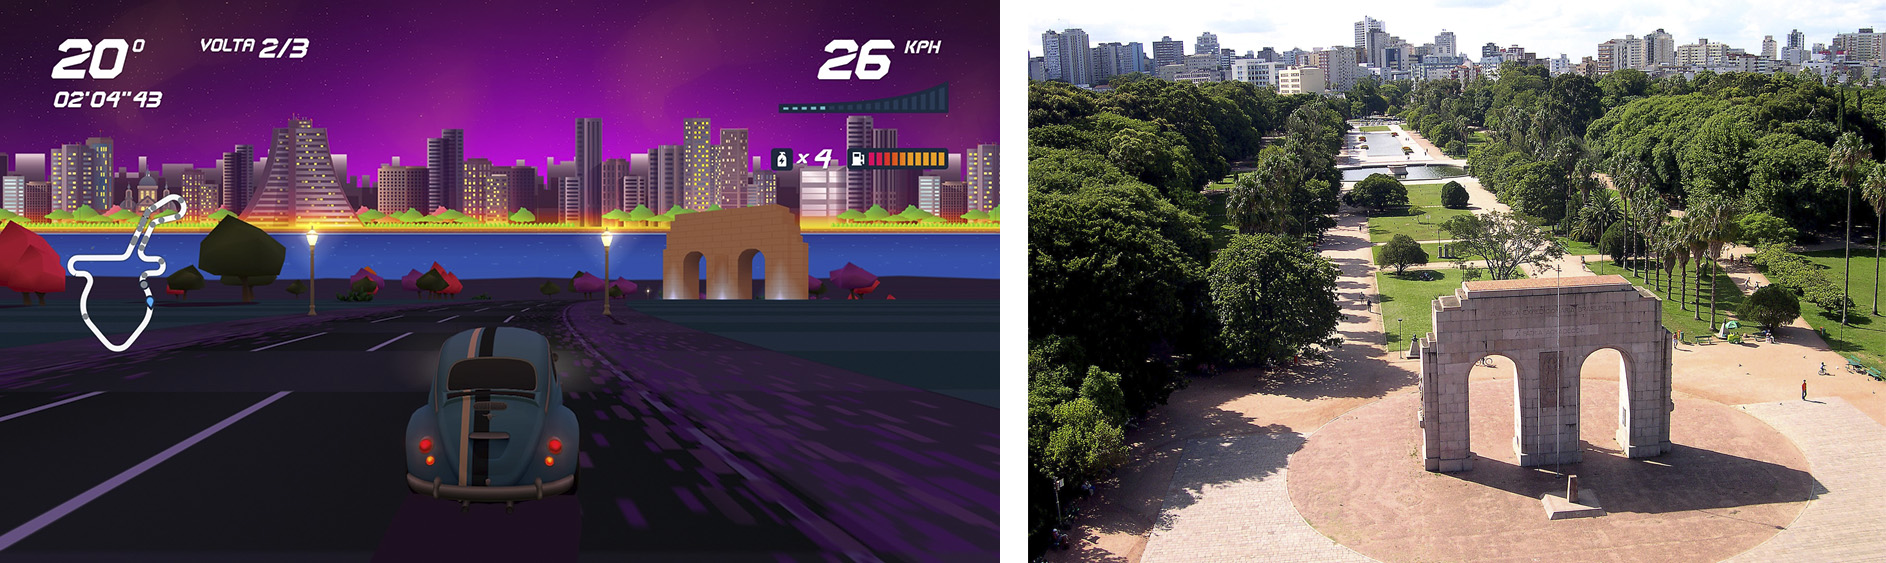 Horizon Chase Turbo – Devs Hometown - Monumento ao Expedicionário